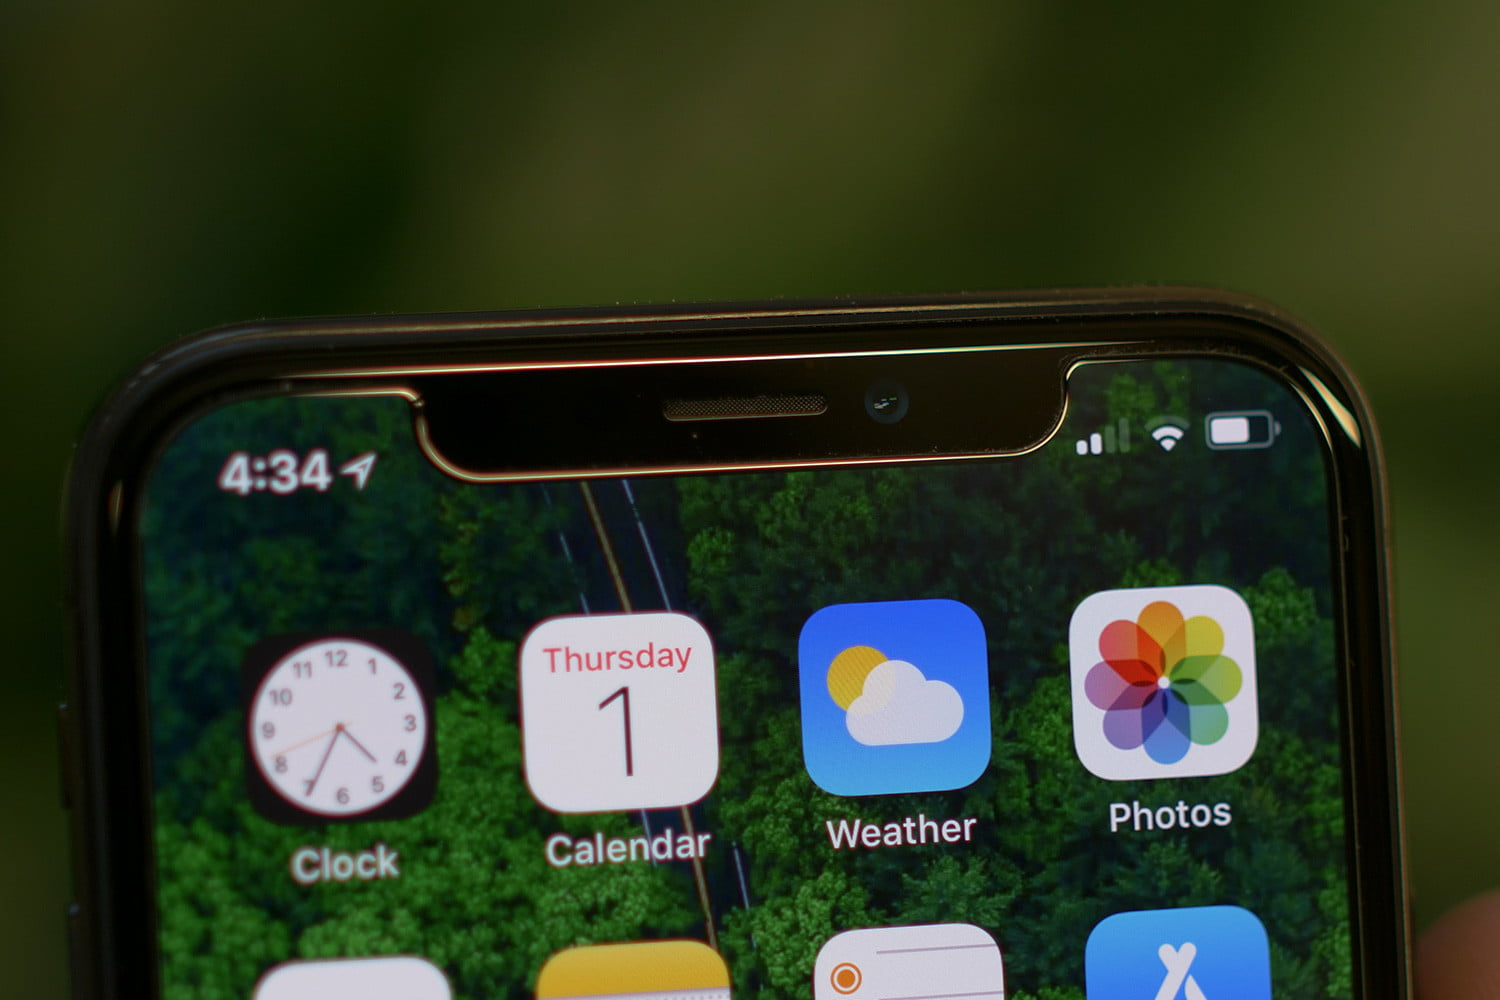 abf960a24 Why Are Android Phone Makers Embracing the Notch